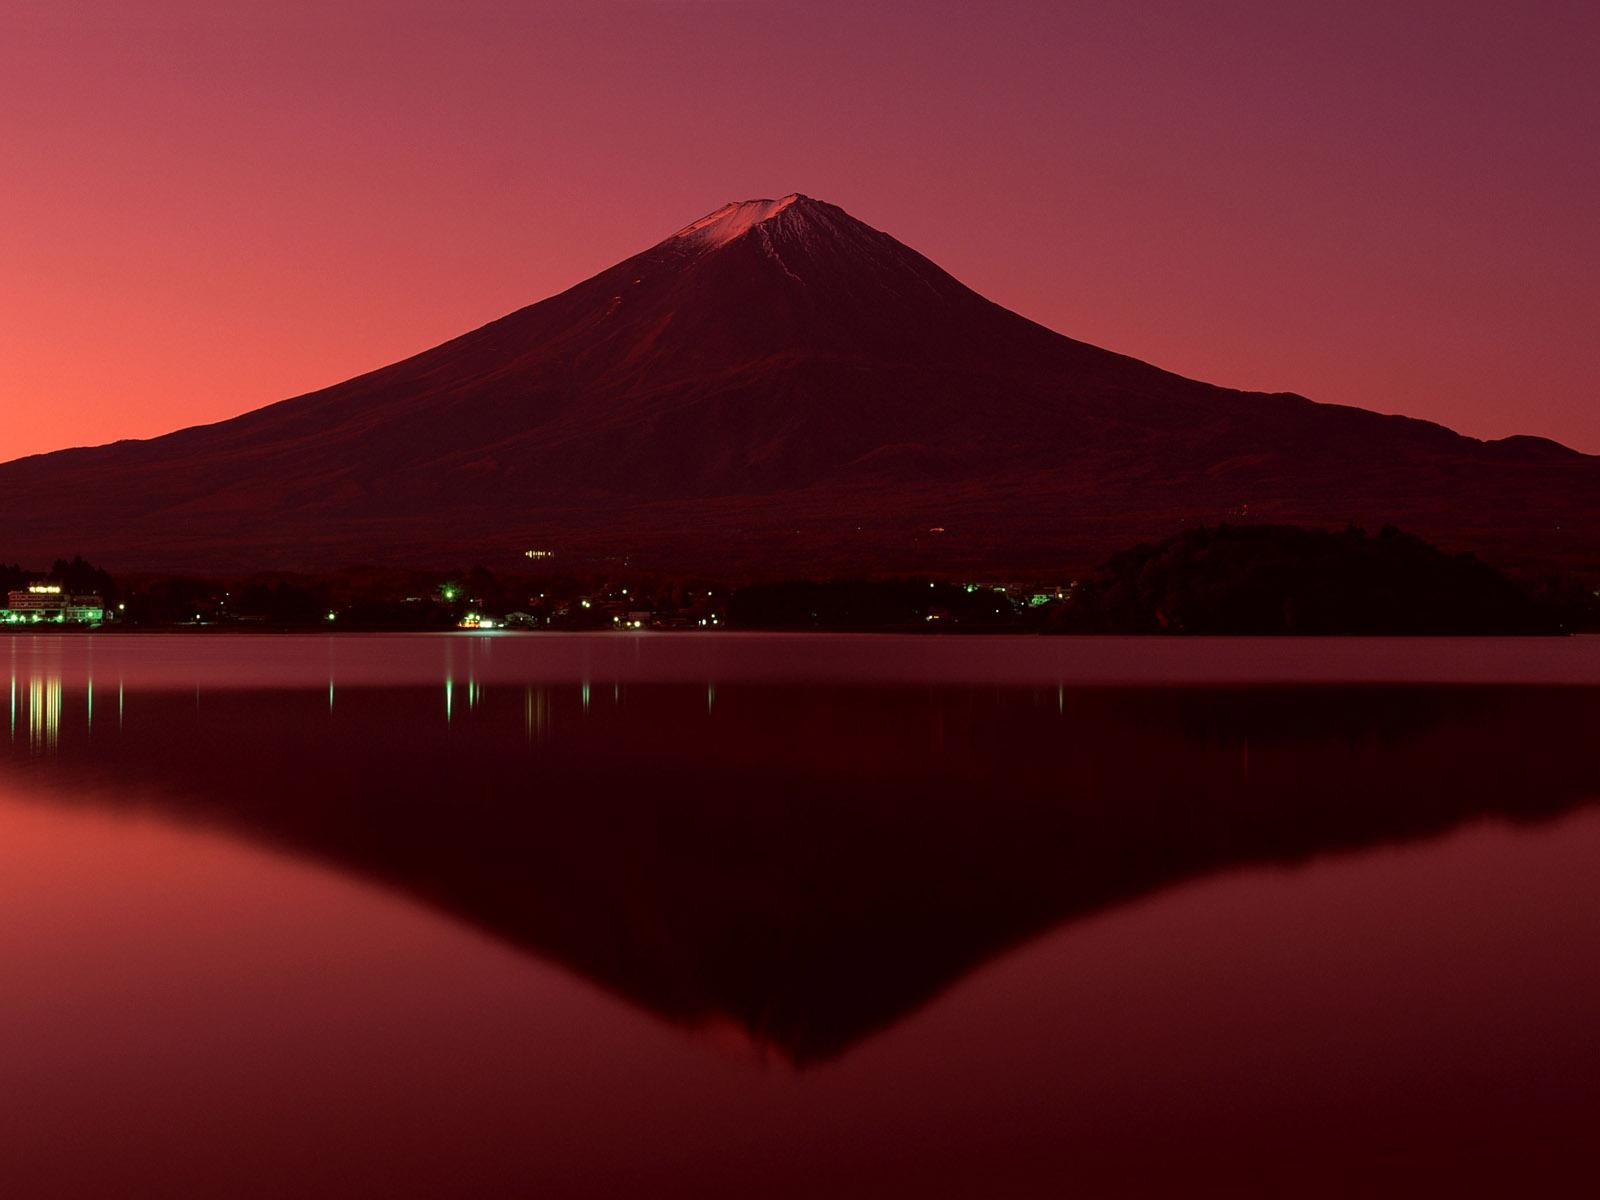 Amazing Mount Fuji Wallpapers